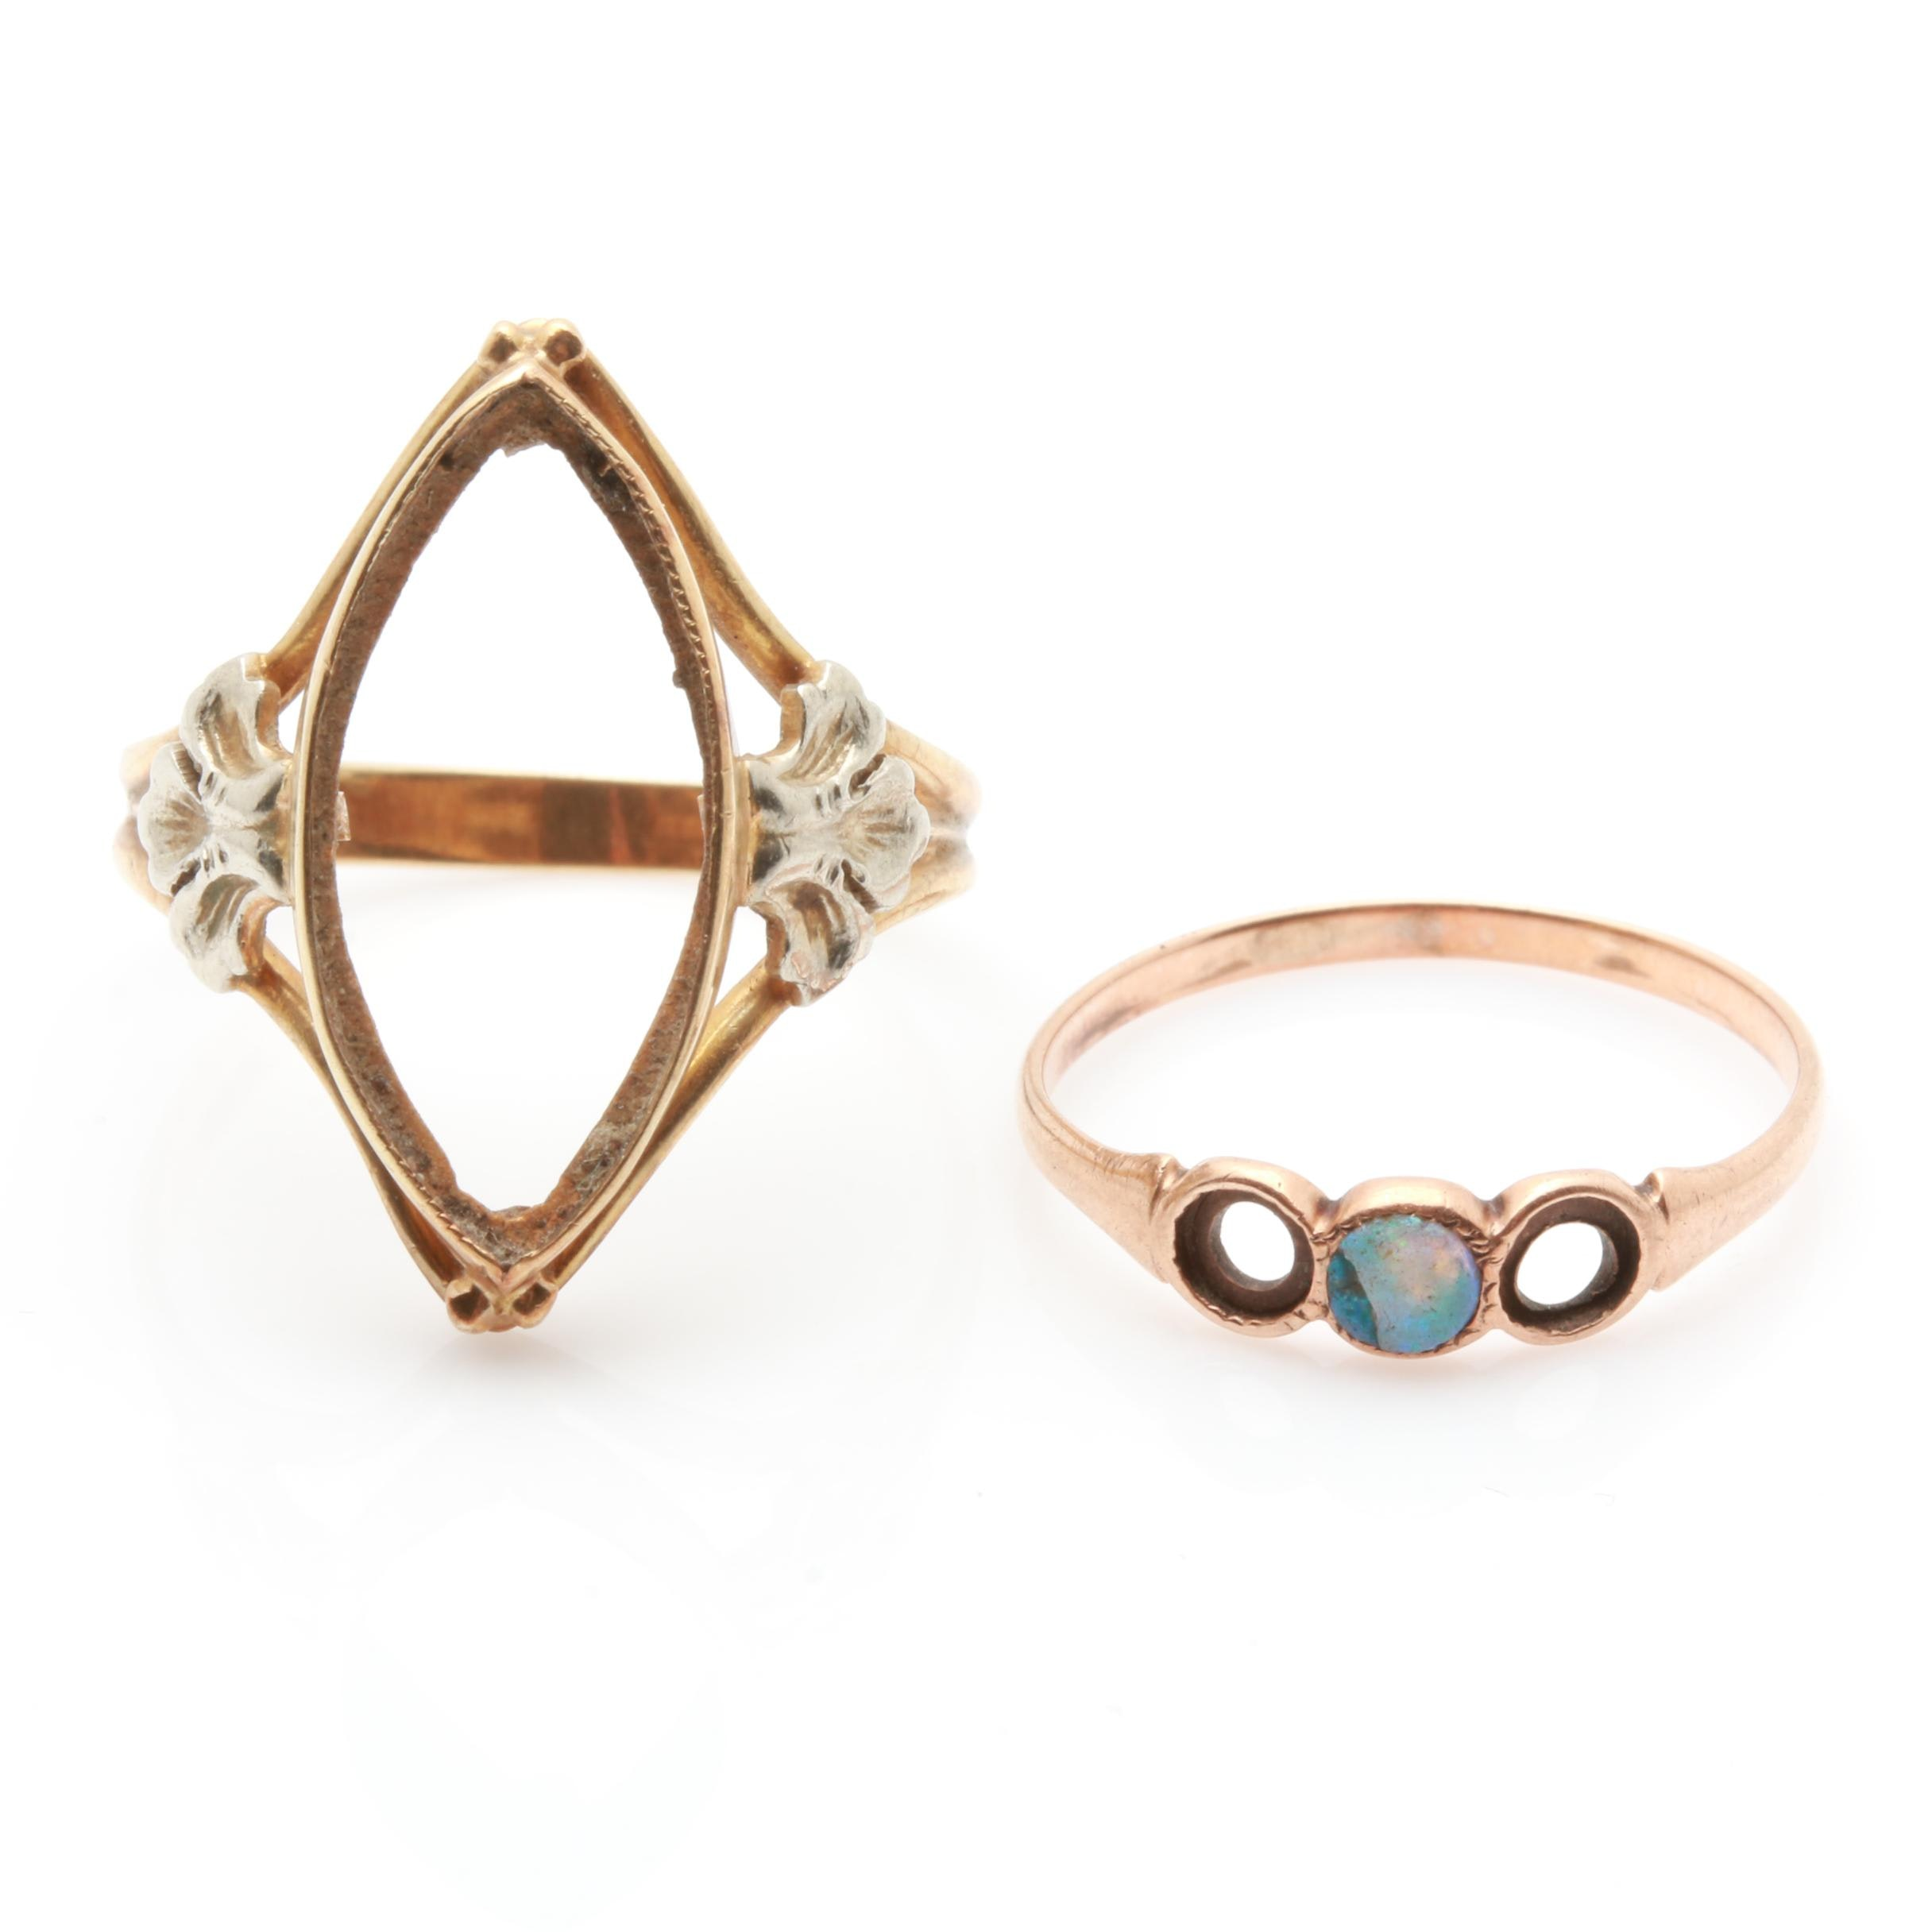 10K Yellow Gold Blank Mount Ring and 10K Rose Gold Opal Ring